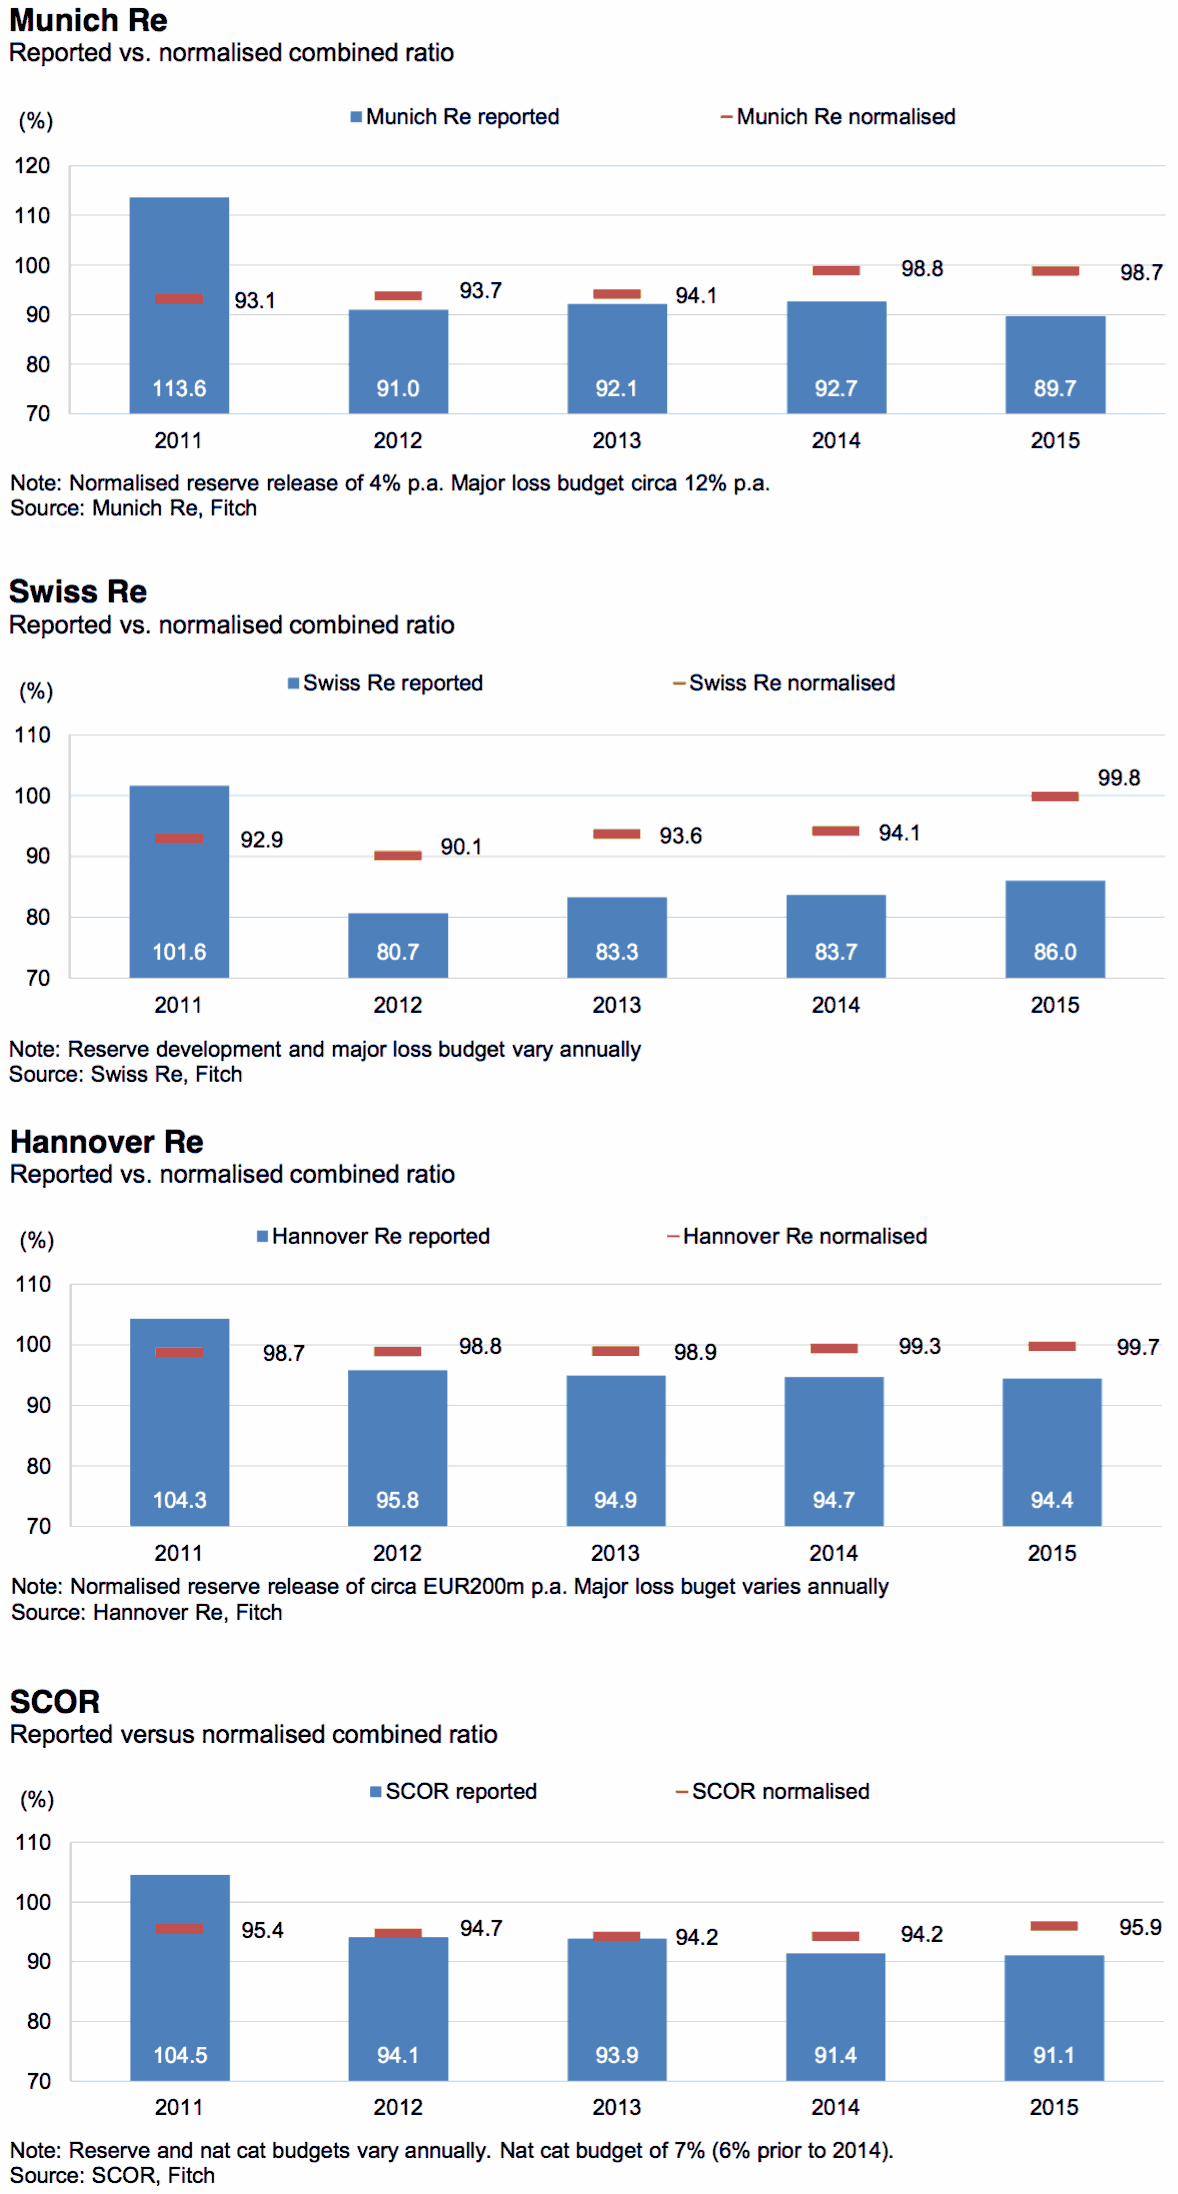 Reported vs normalised combined ratios by major European reinsurer